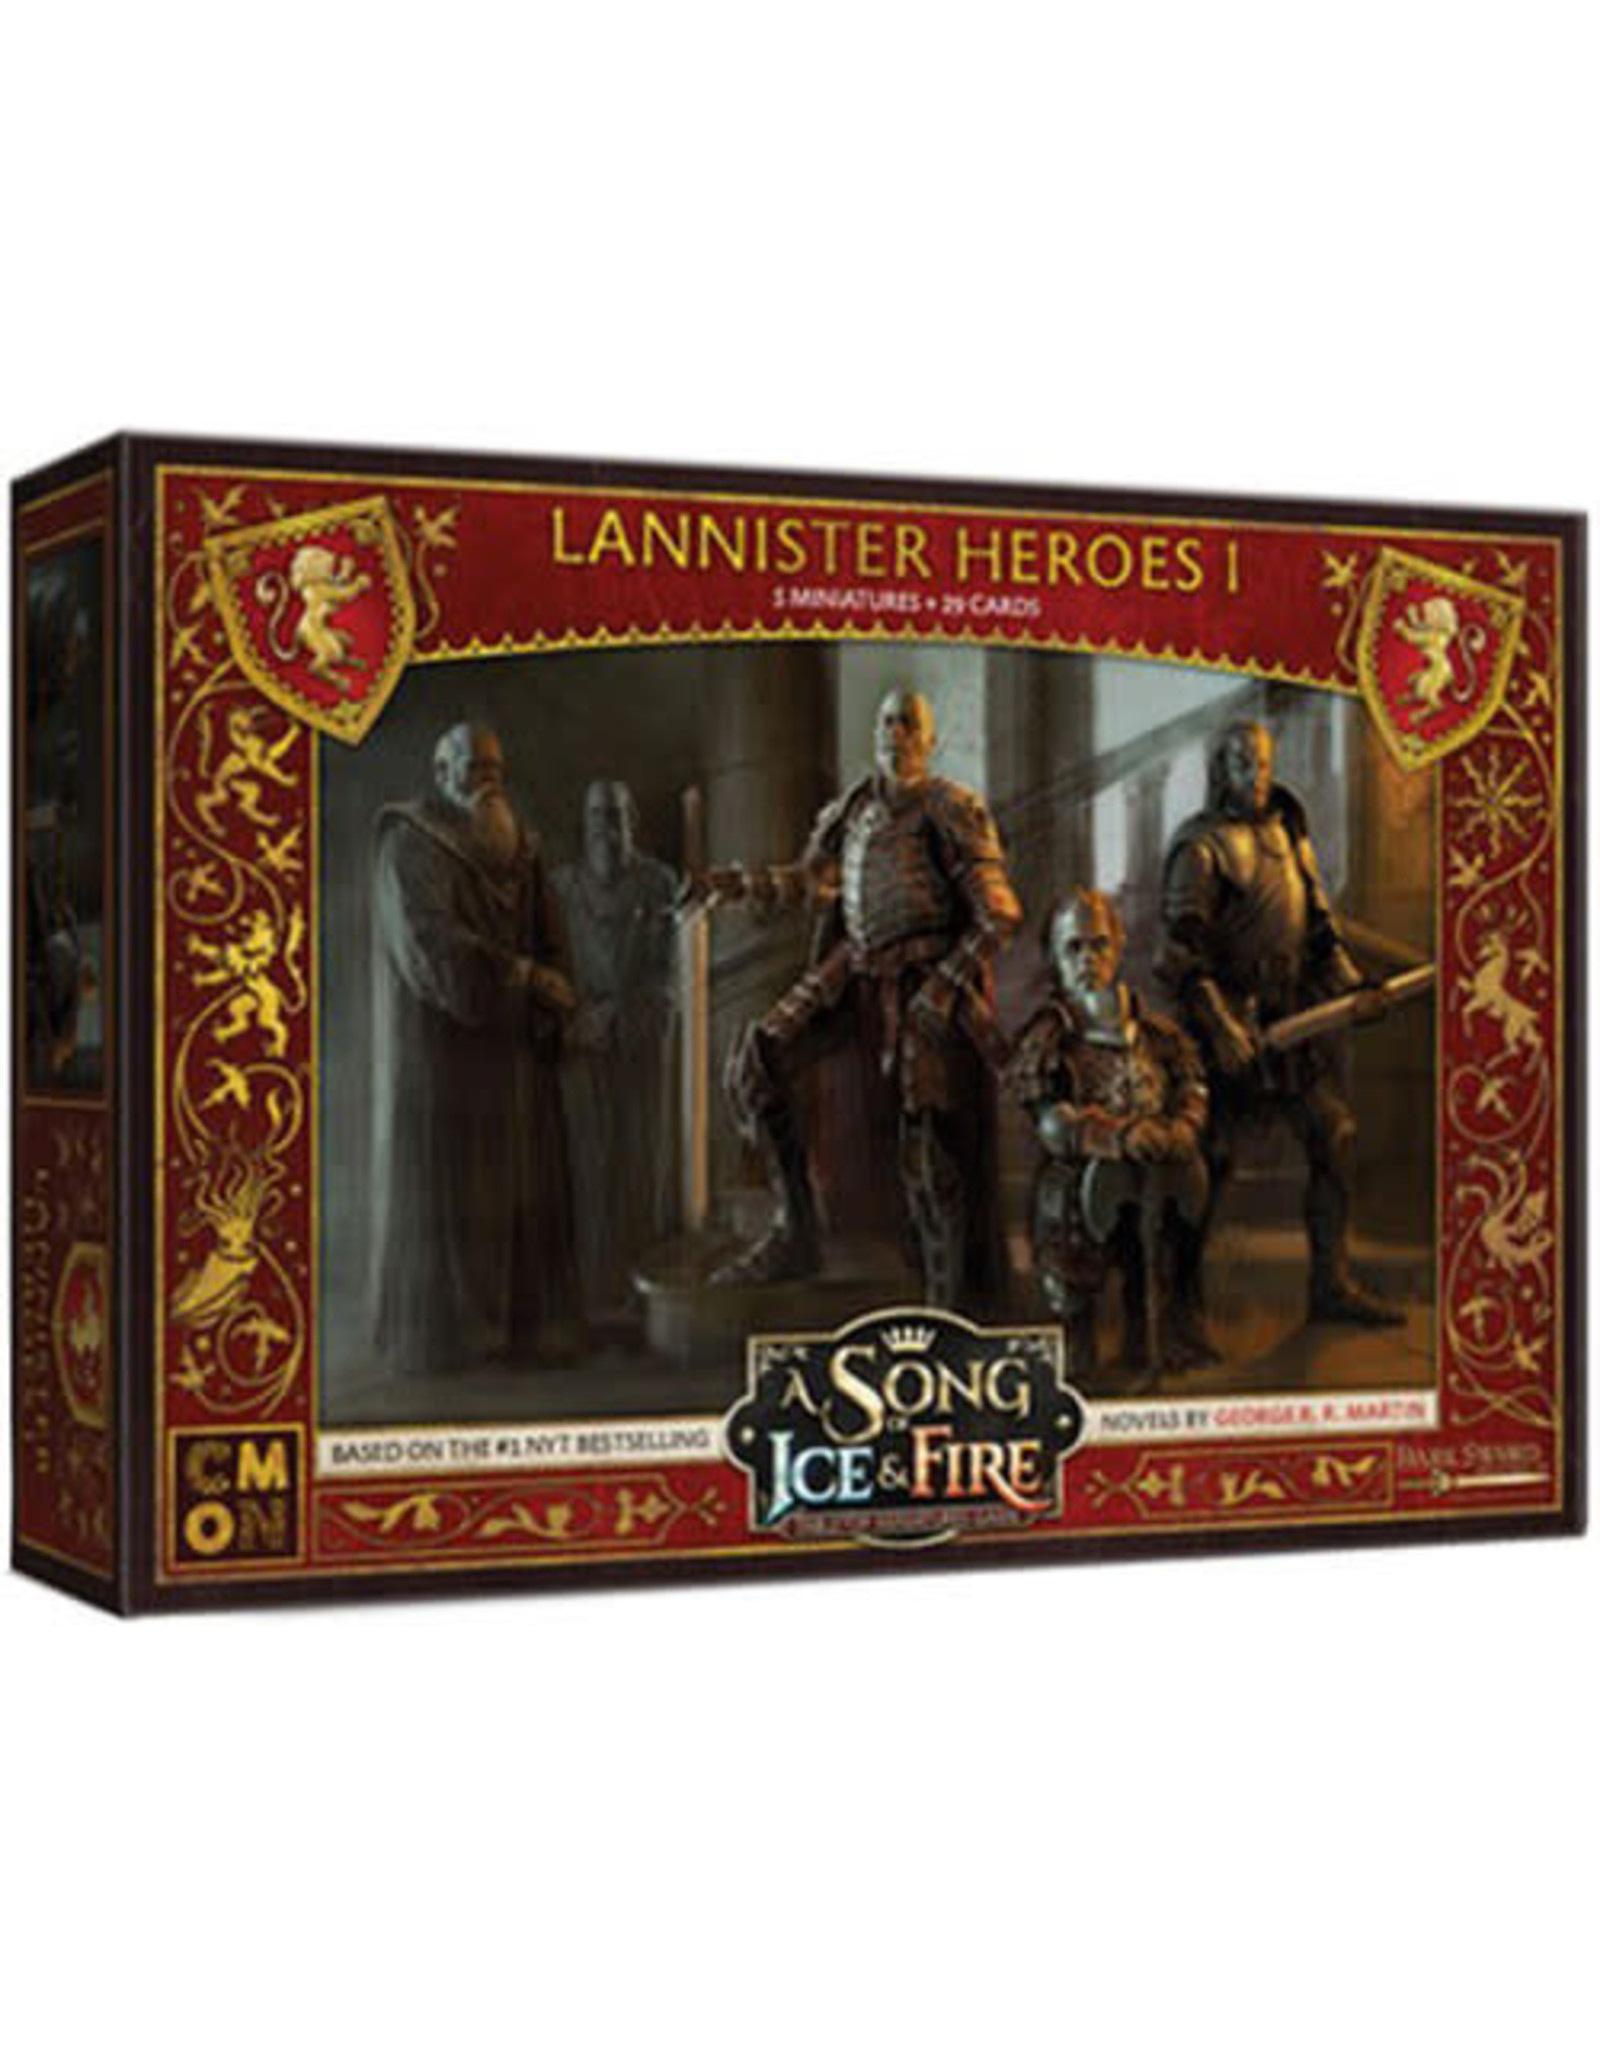 A Song of Fire and Ice: Lannister Heroes #1